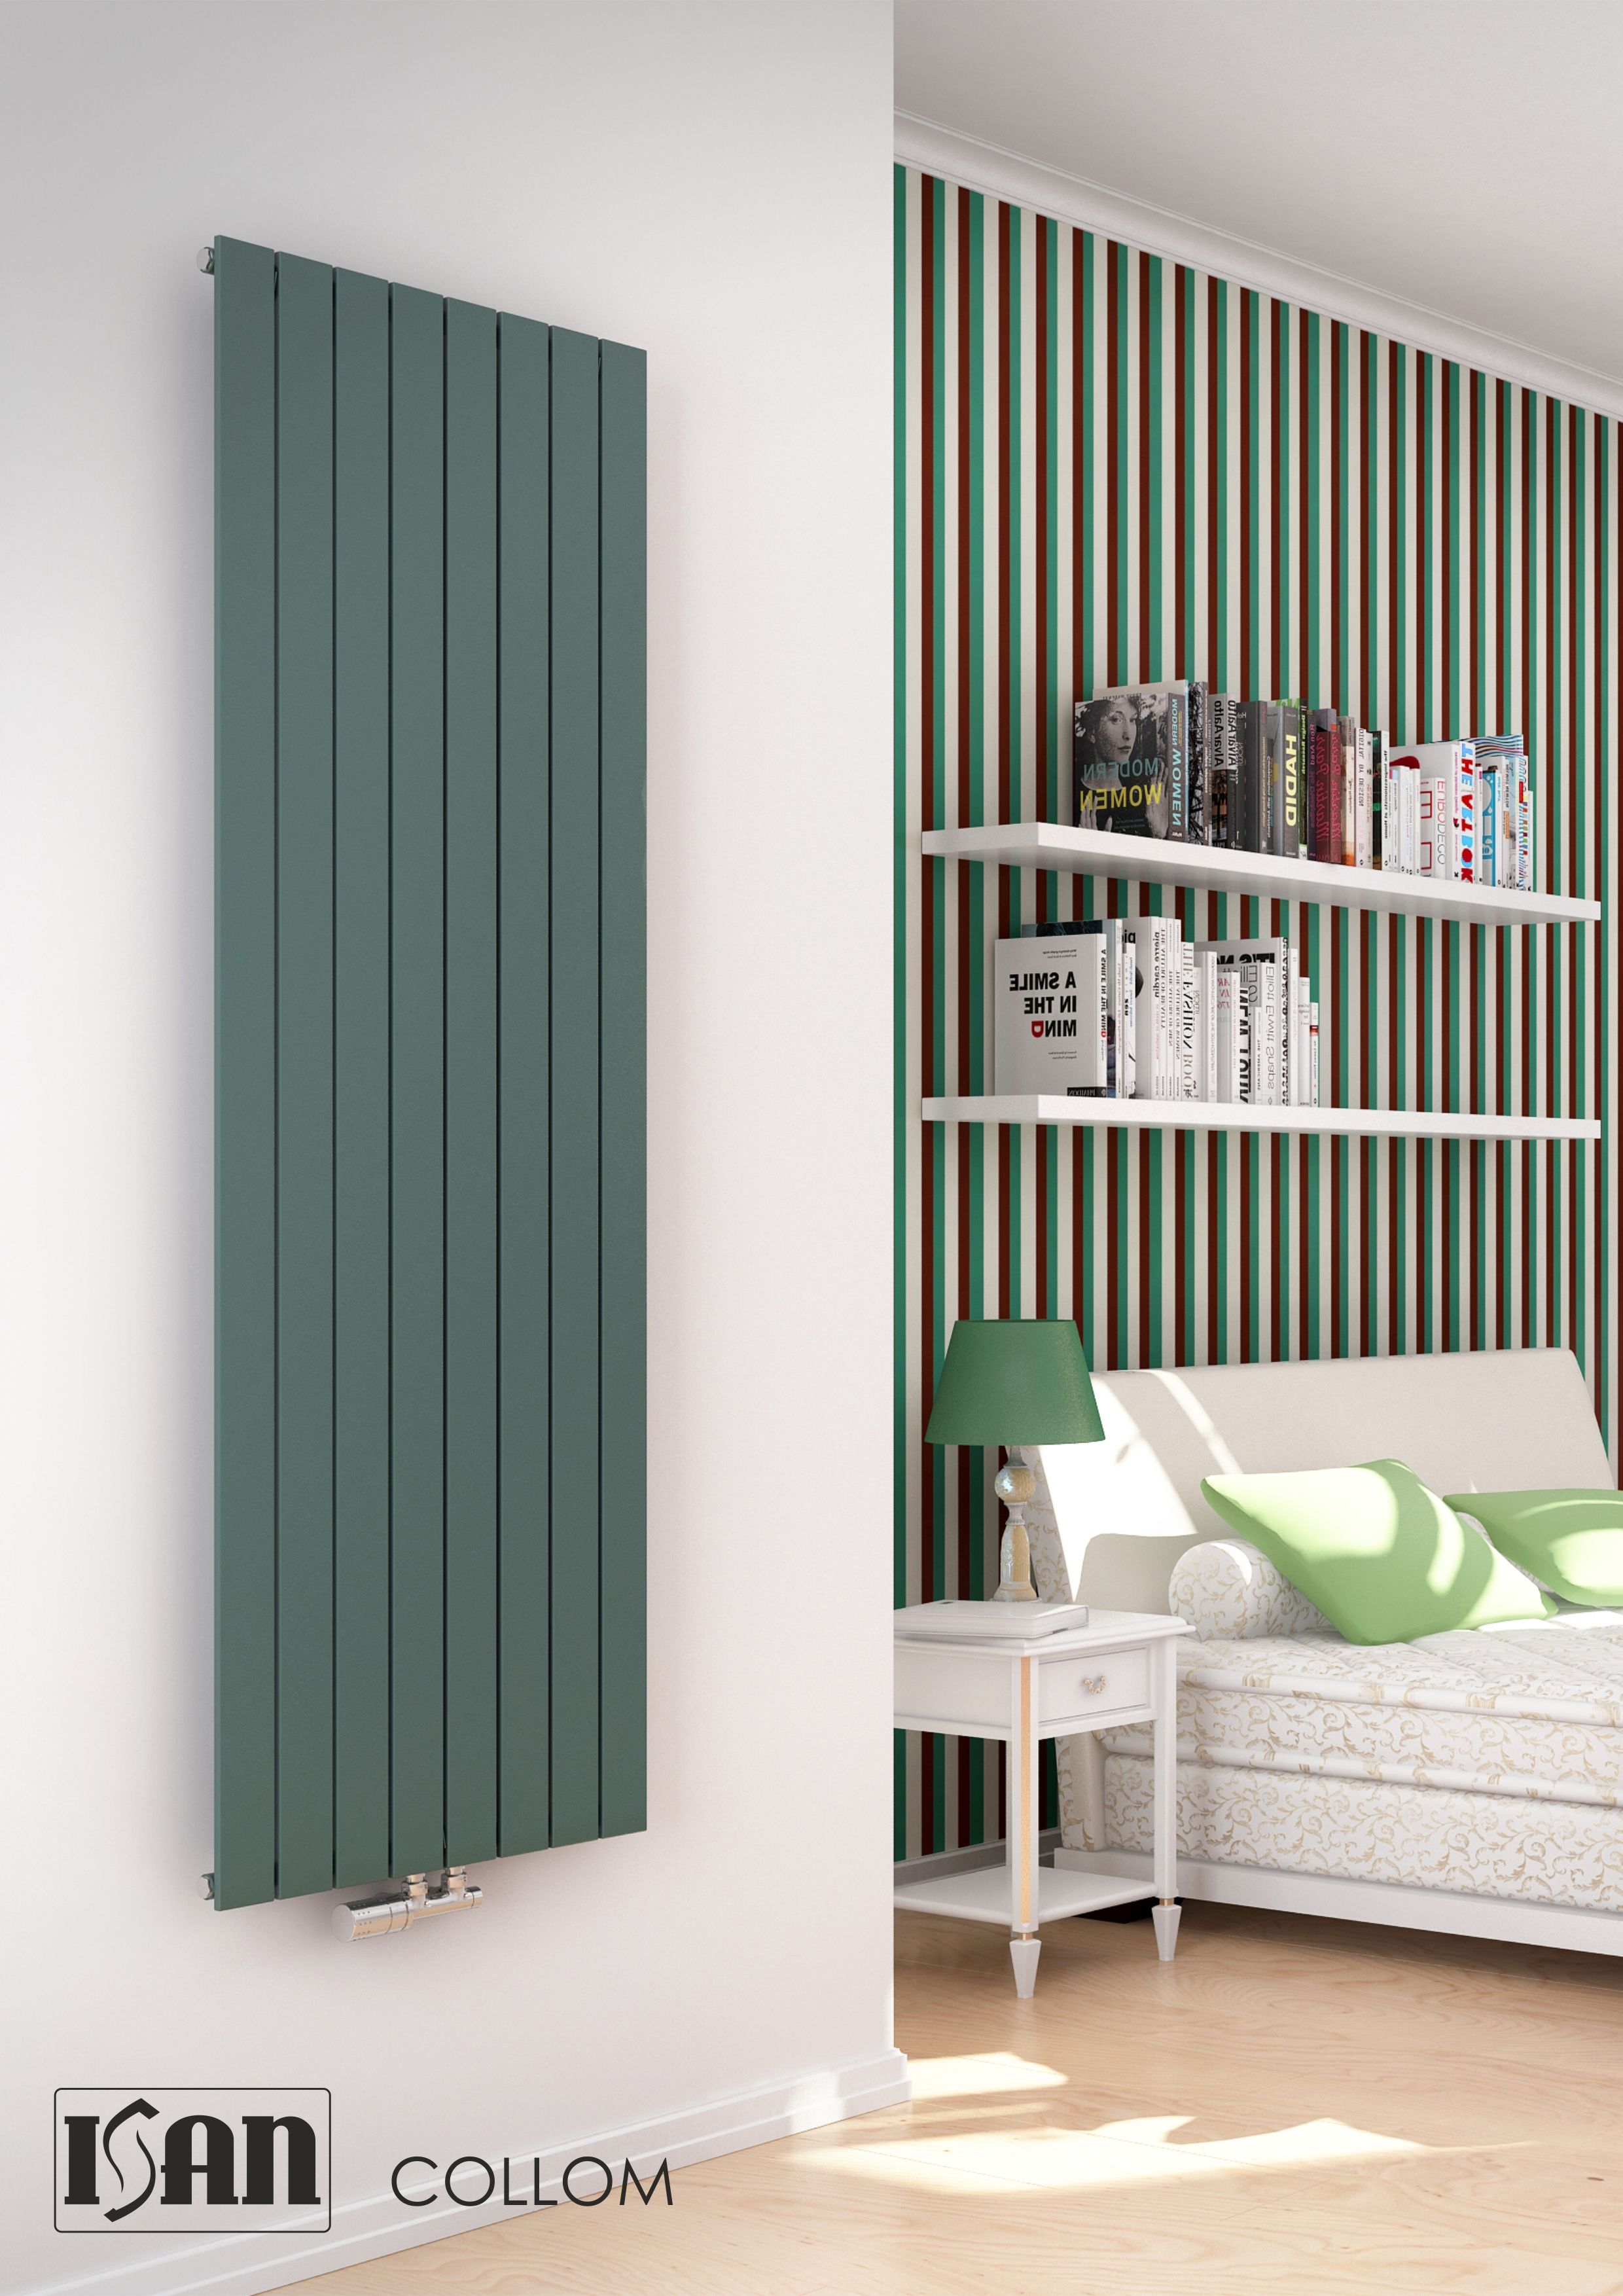 Collom  Design Radiator, Producer Isan Radi Tory, Sro, Wwwisan